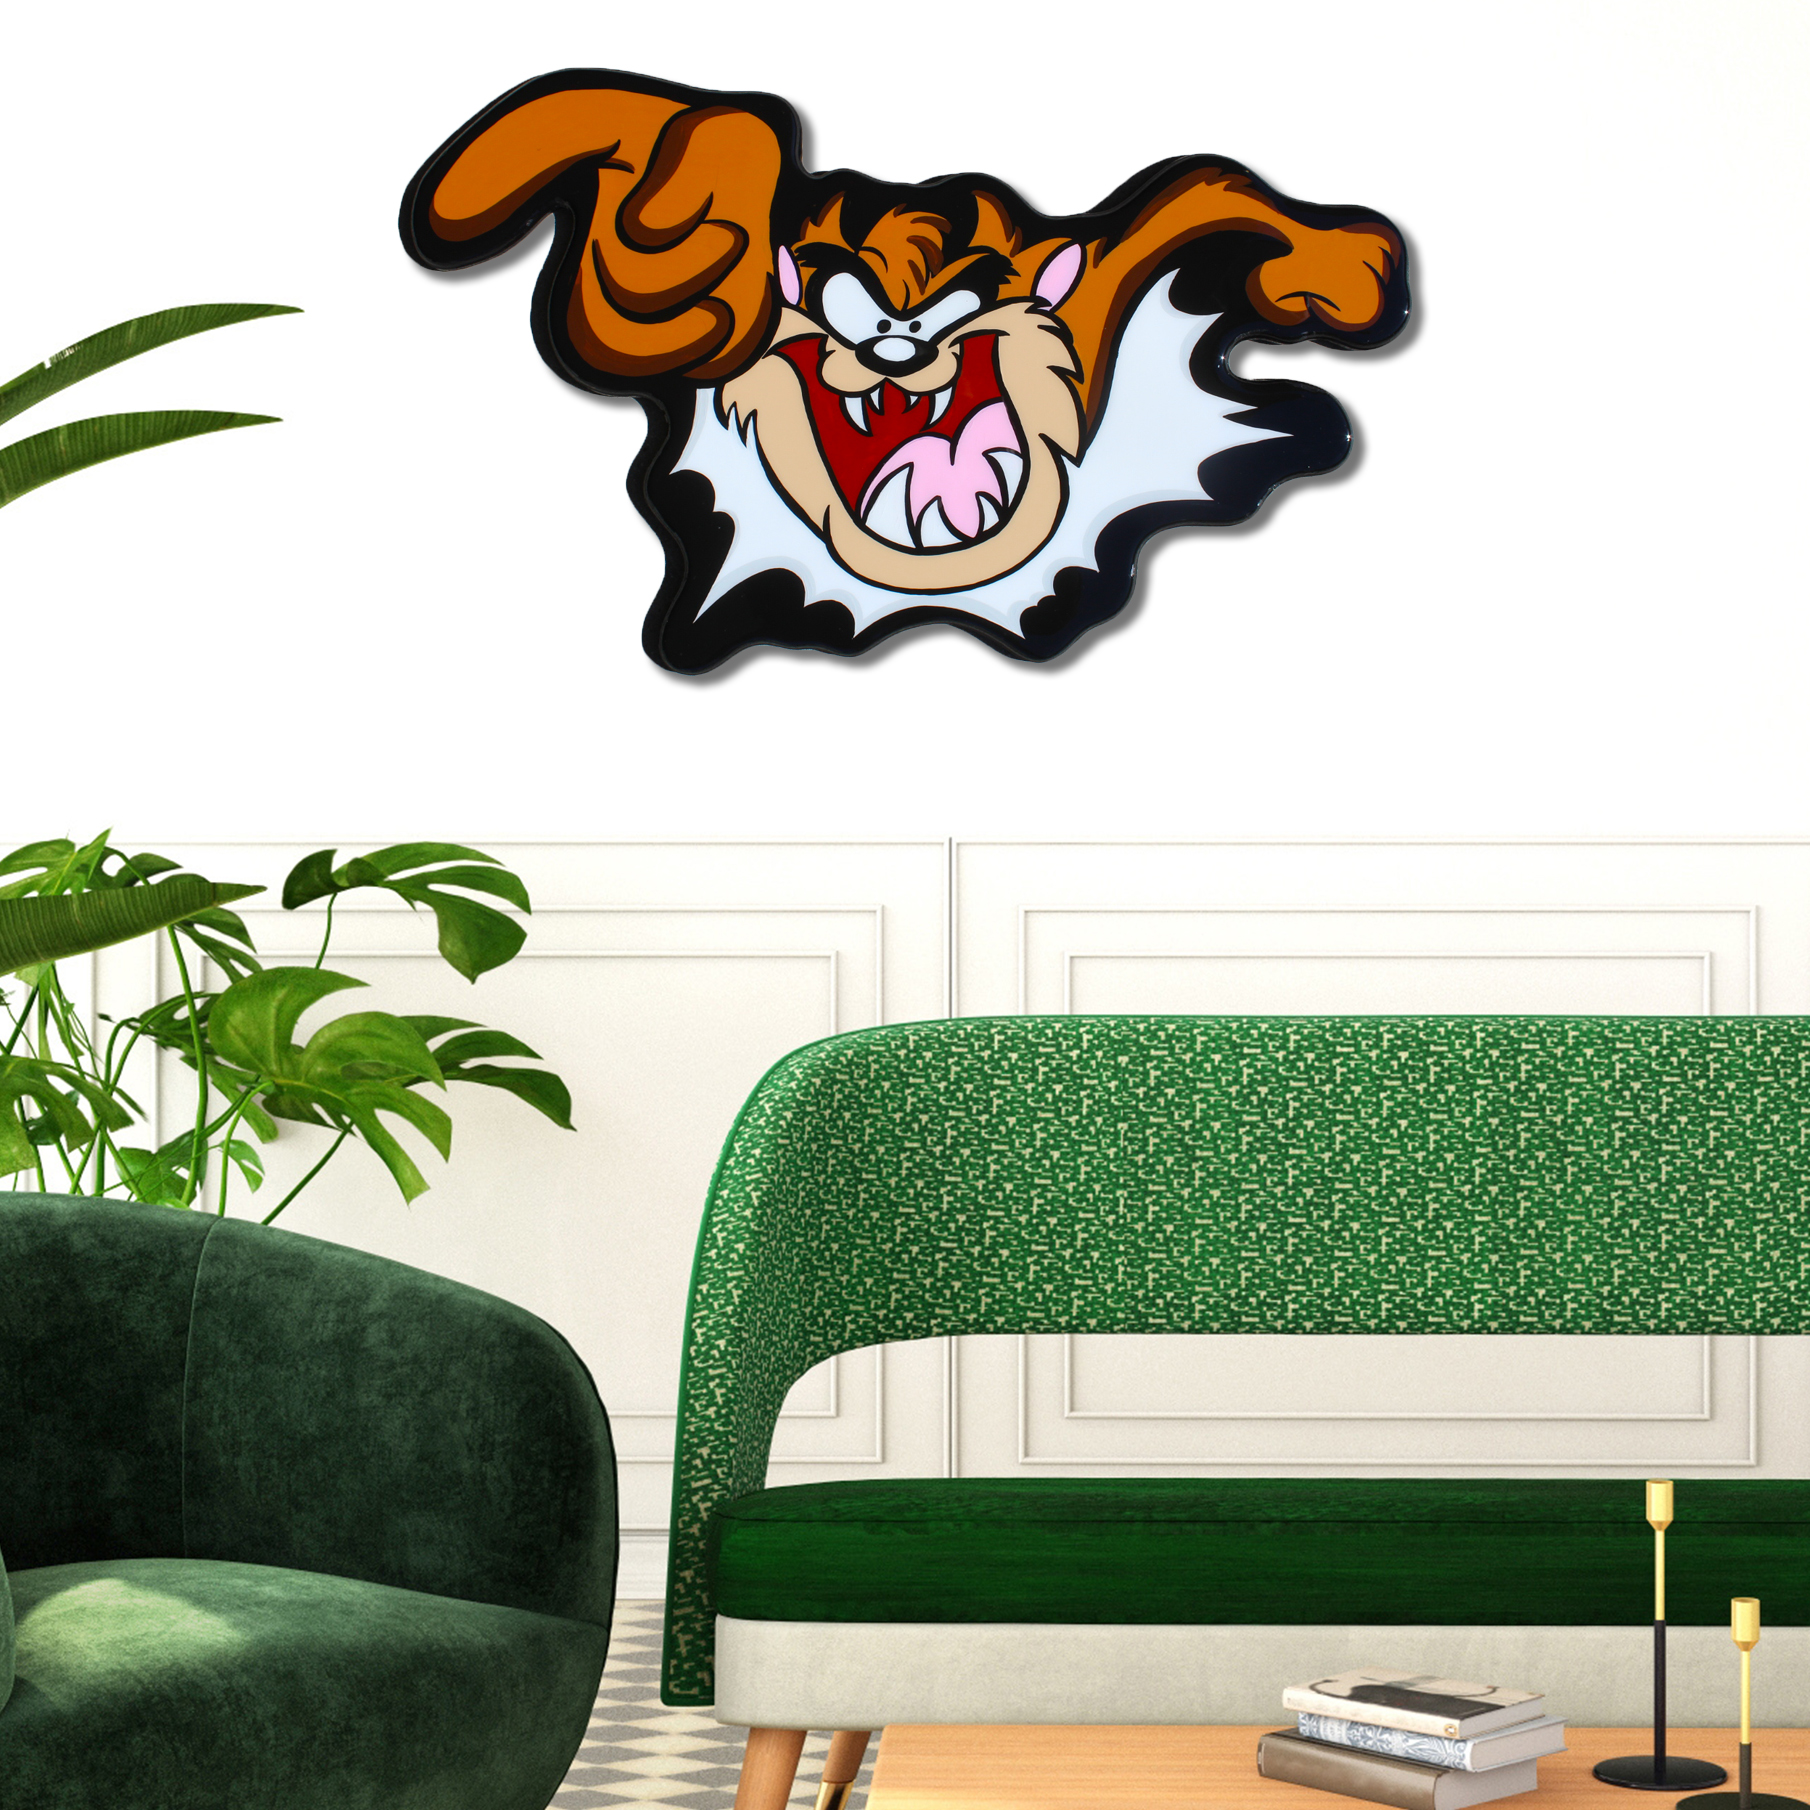 Tasmanian Devil Interactive Wall Art